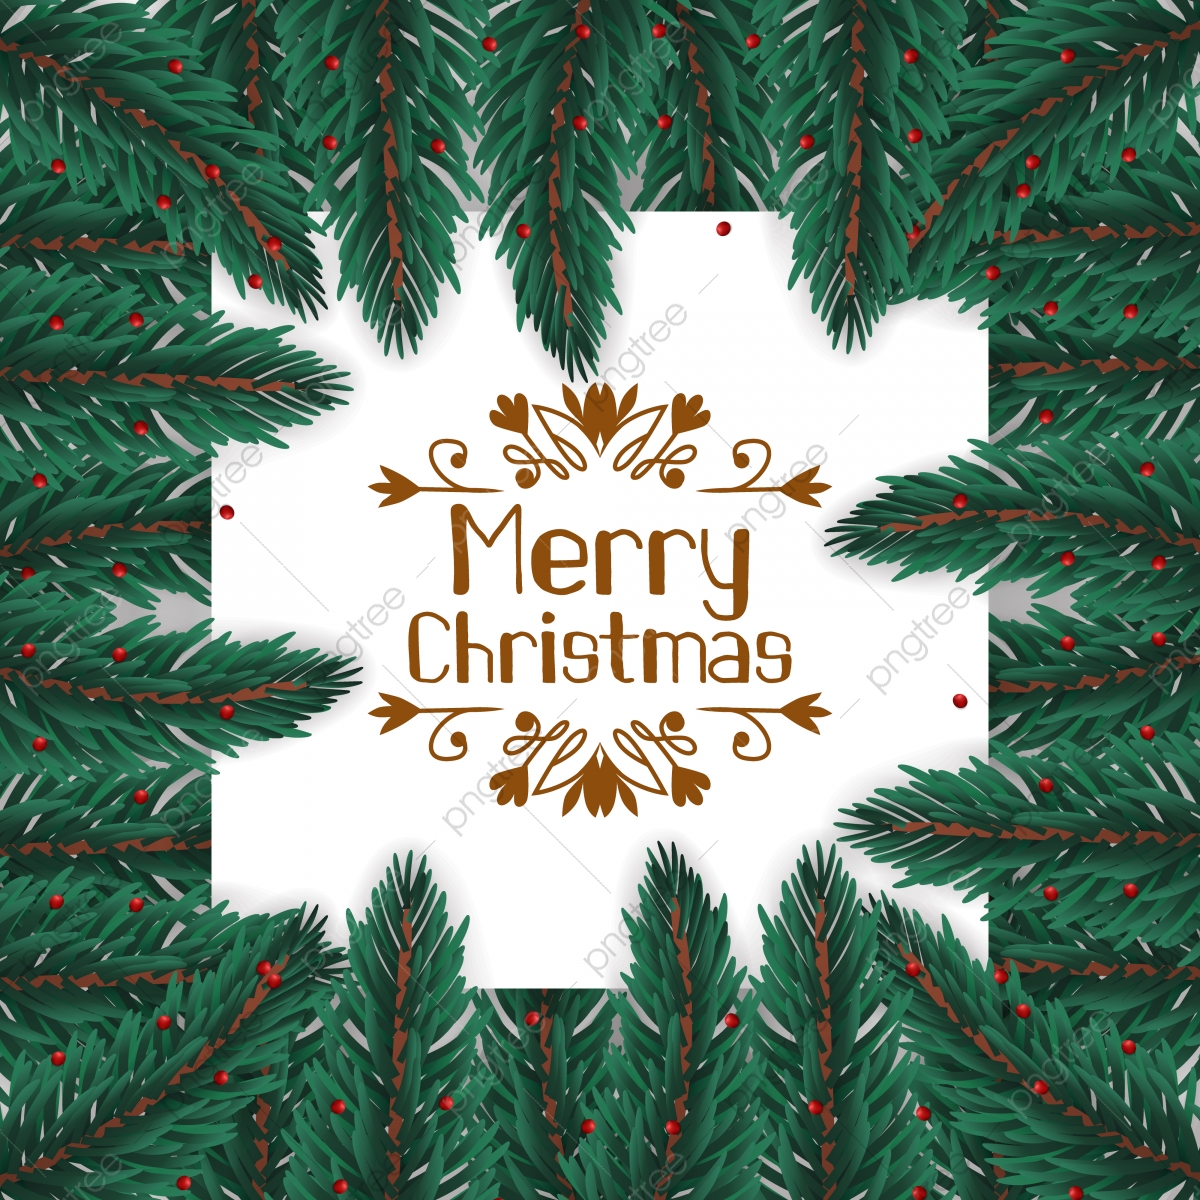 Frame Border Fir Leaves Garland Decoration For Christmas Background Holiday Christmas Png And Vector With Transparent Background For Free Download